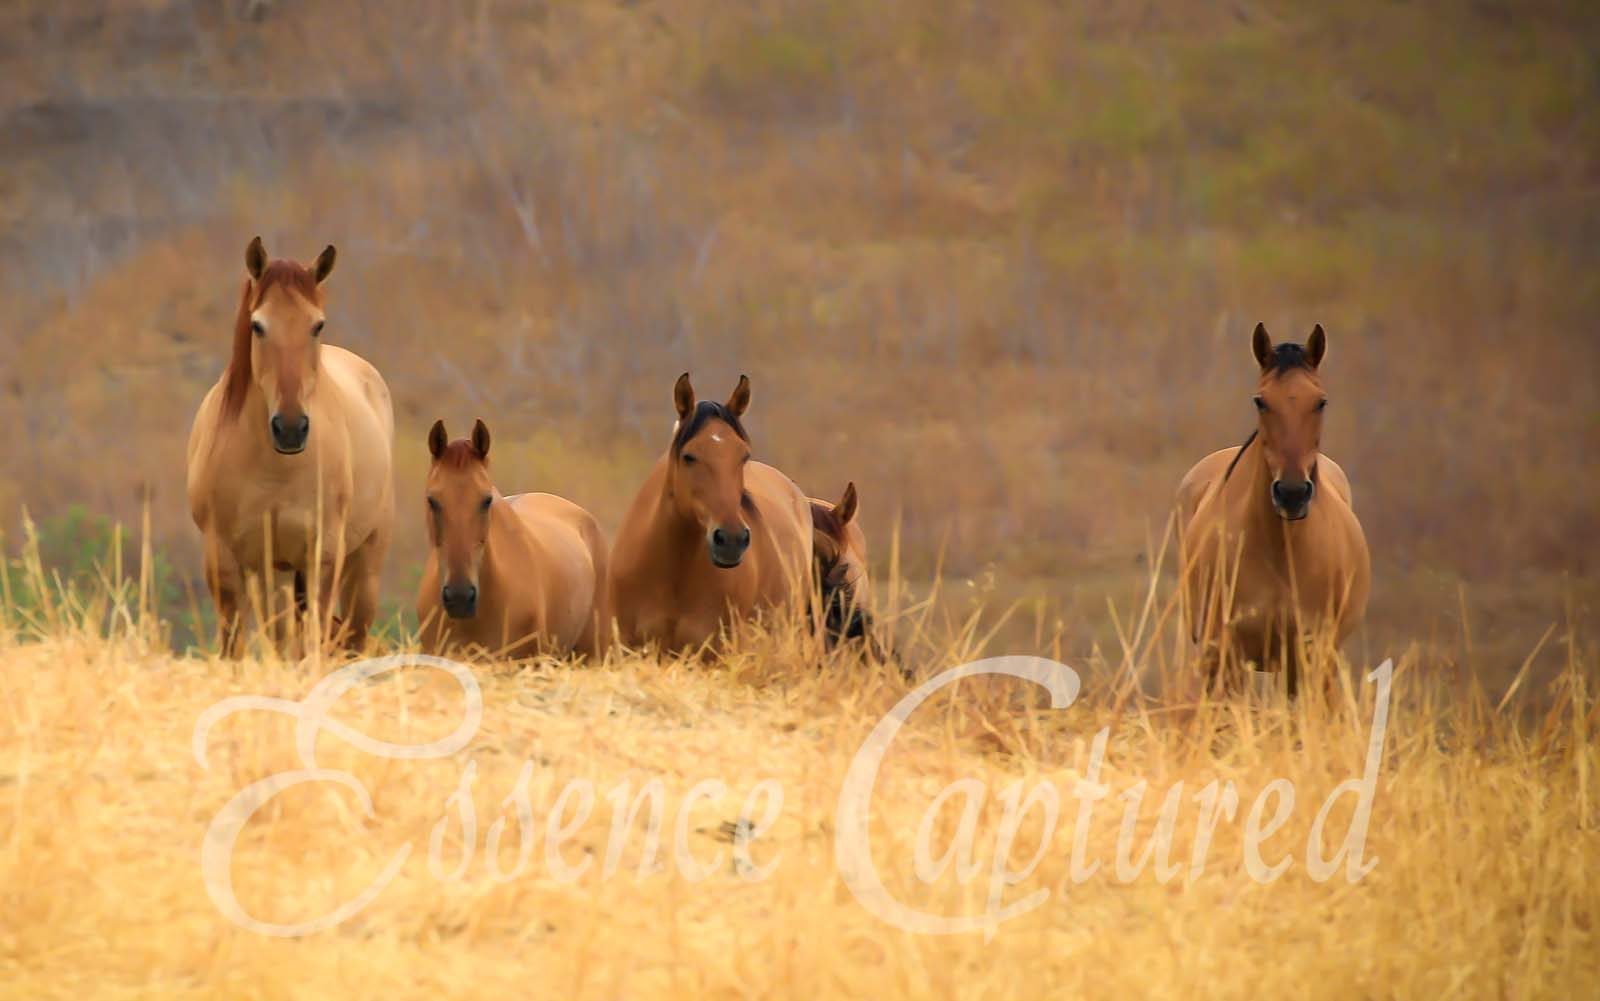 five mares looking at camera in golden grassy field